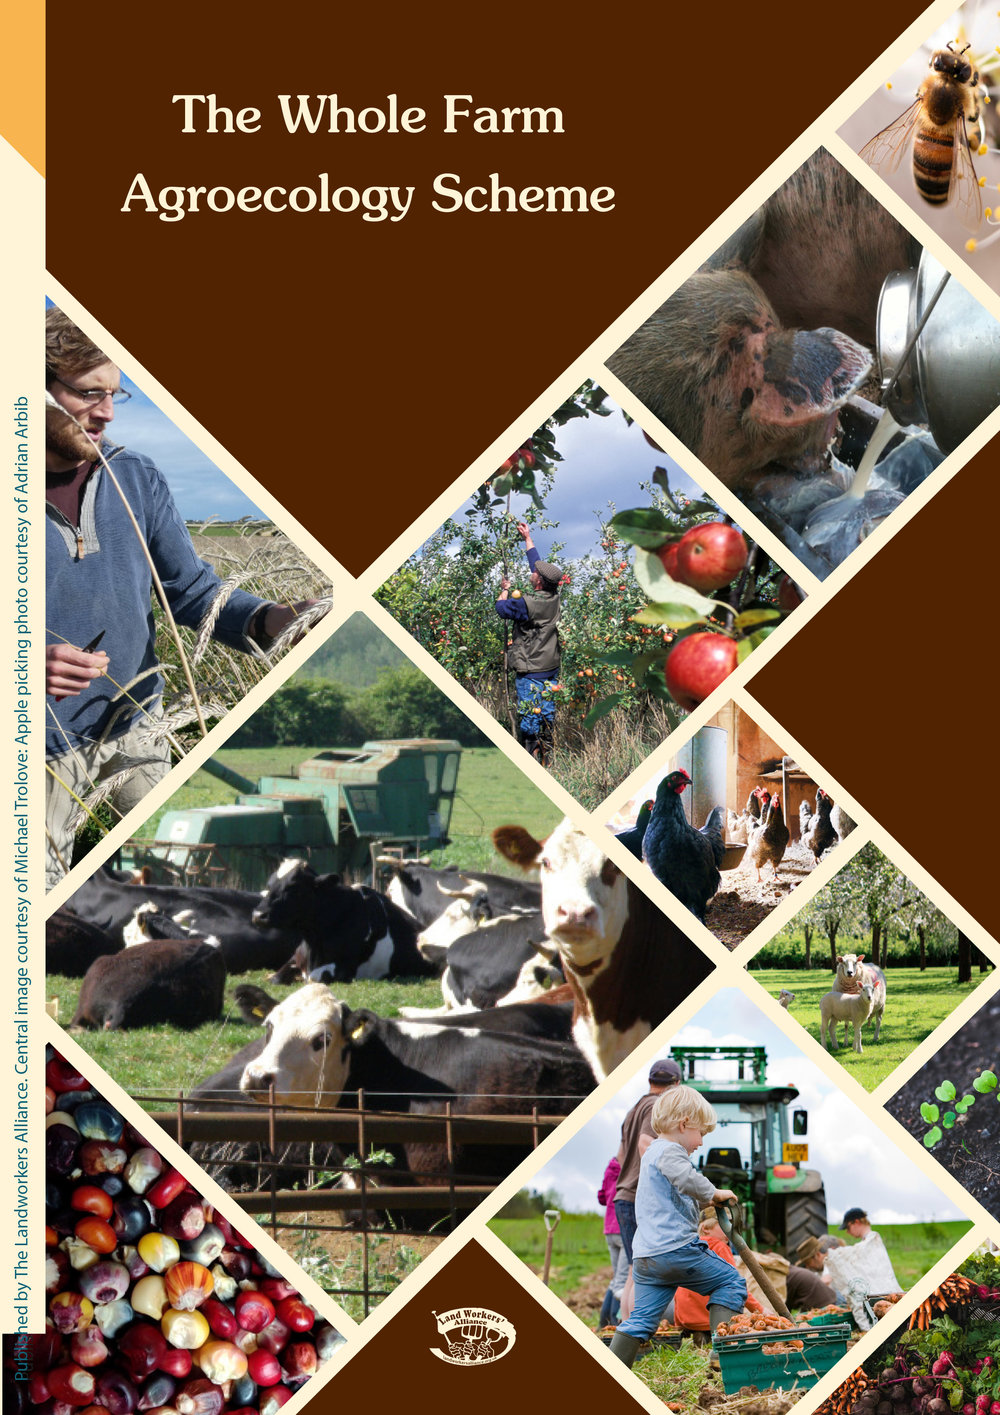 whole-farm-agroecology-system-landworkers-alliance-lwa-agriculture-bill-brexit.jpg